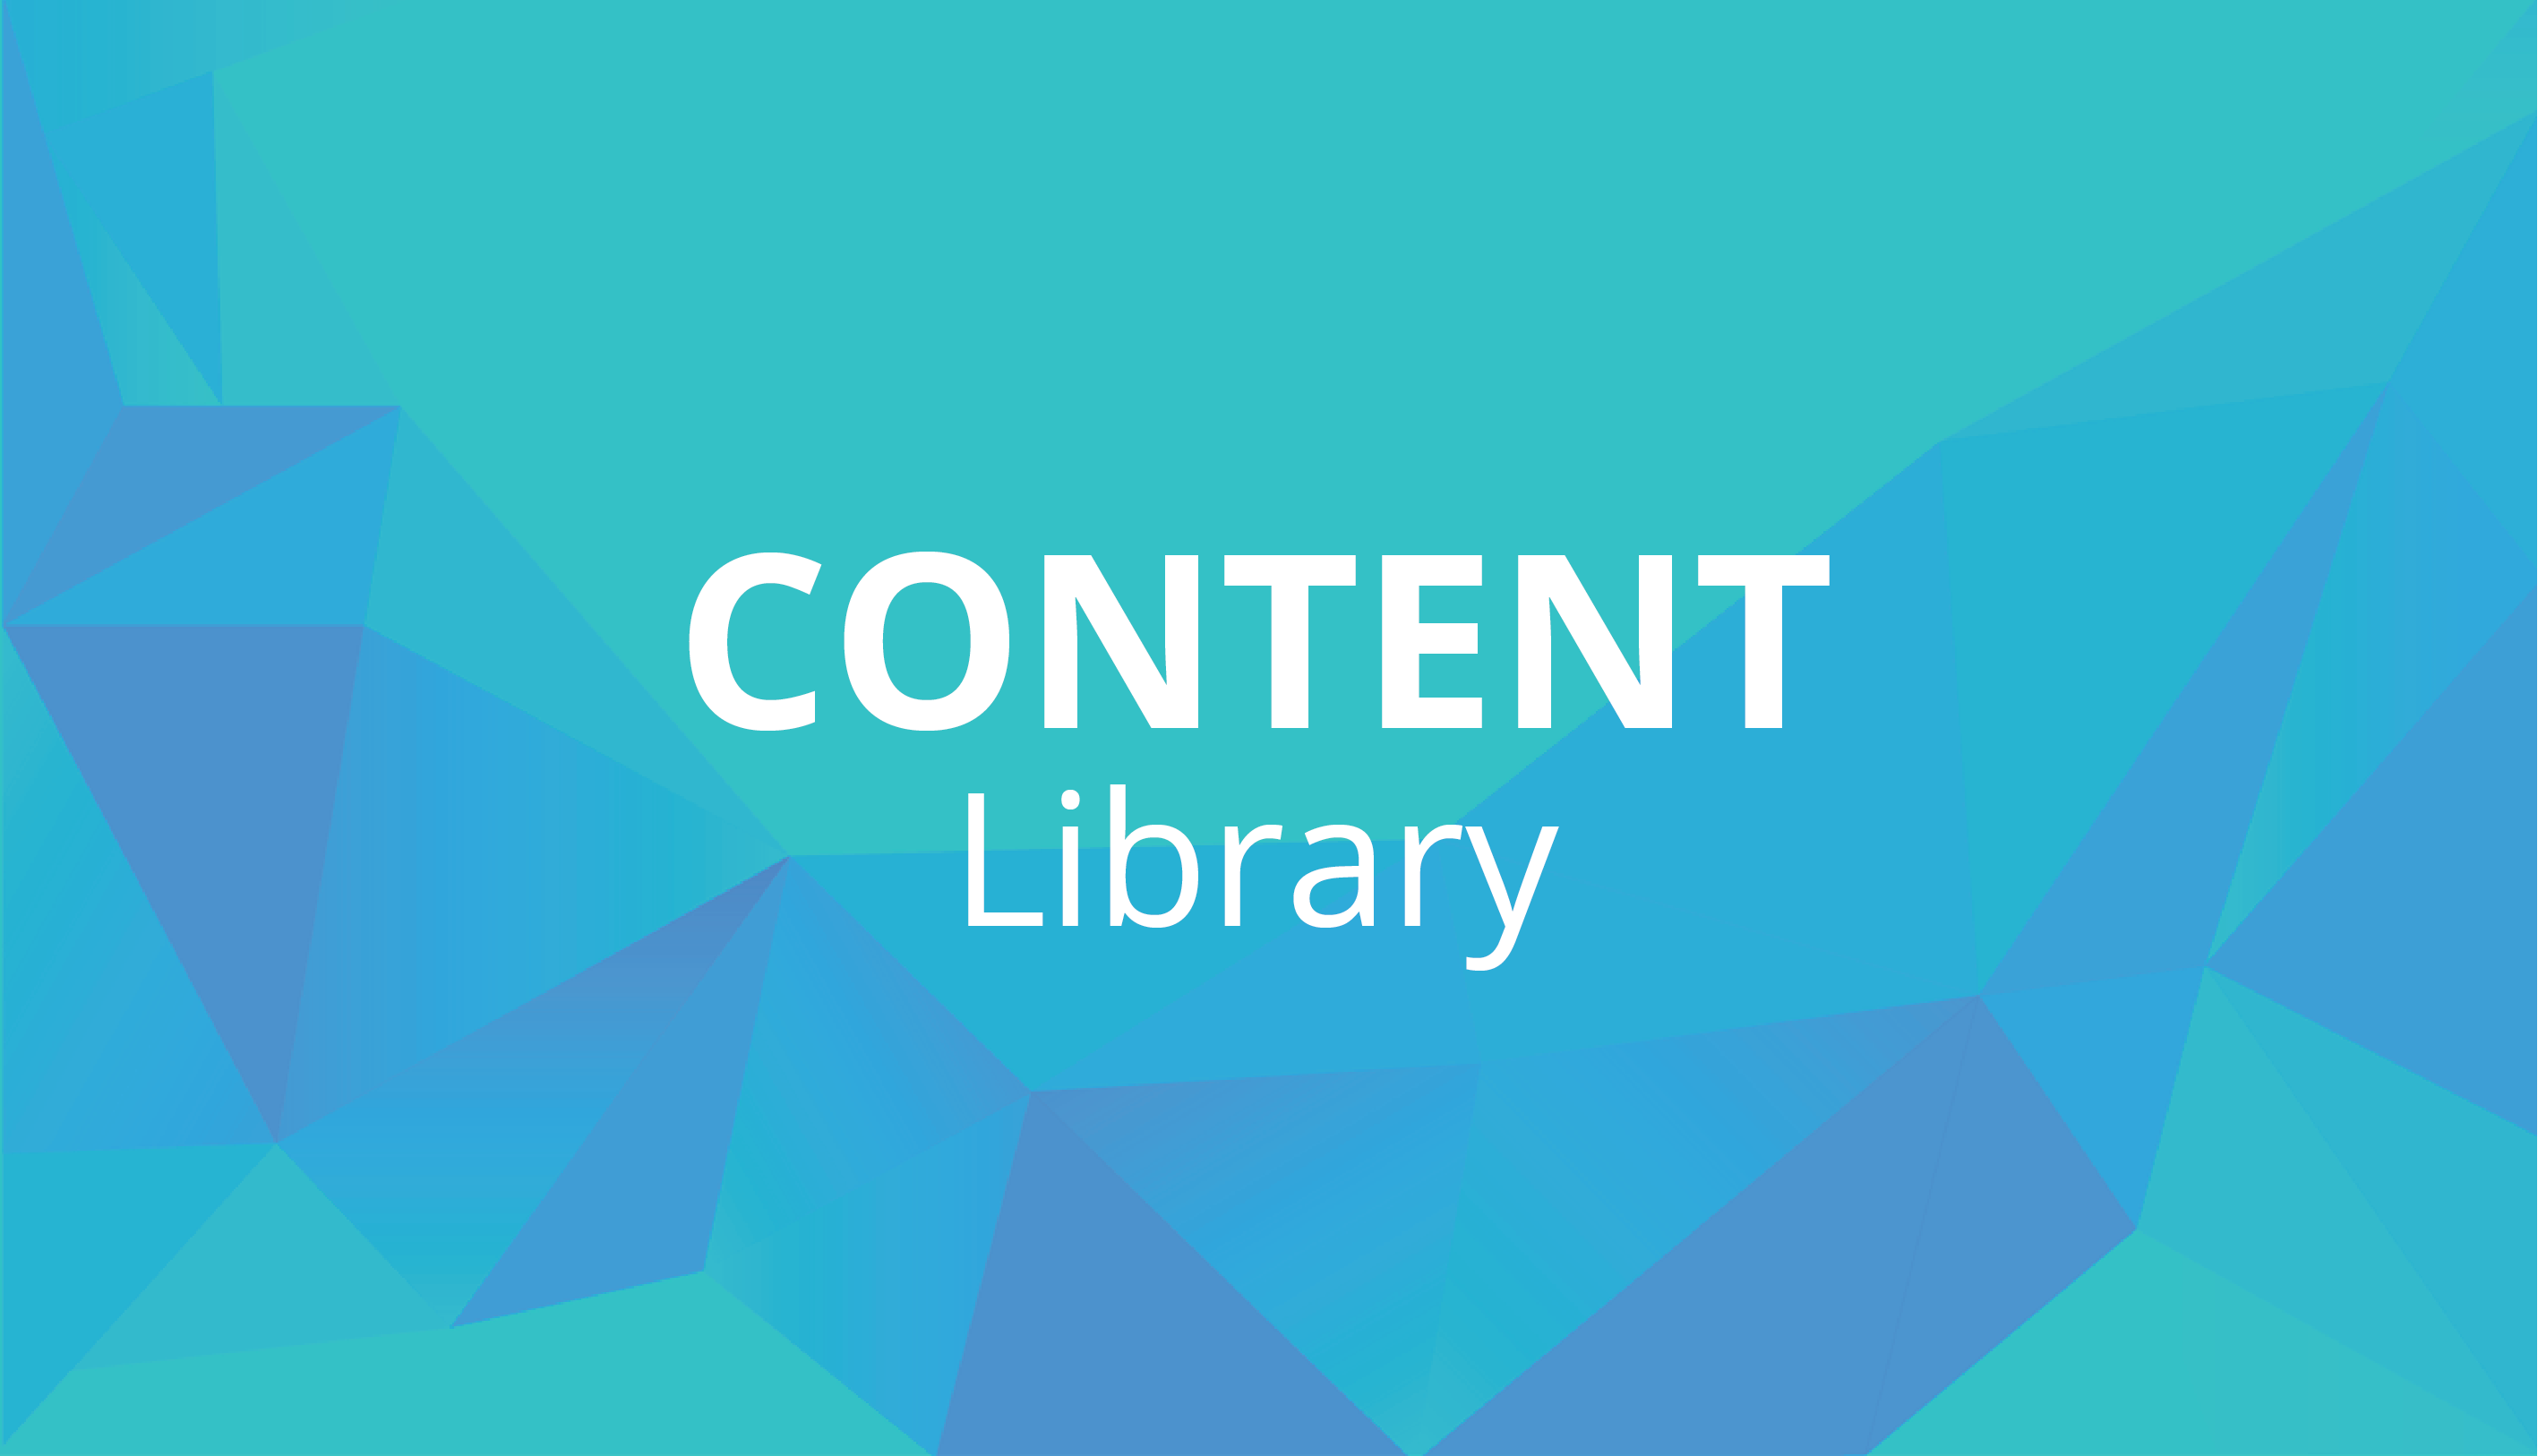 Access the content library for individual learning assets